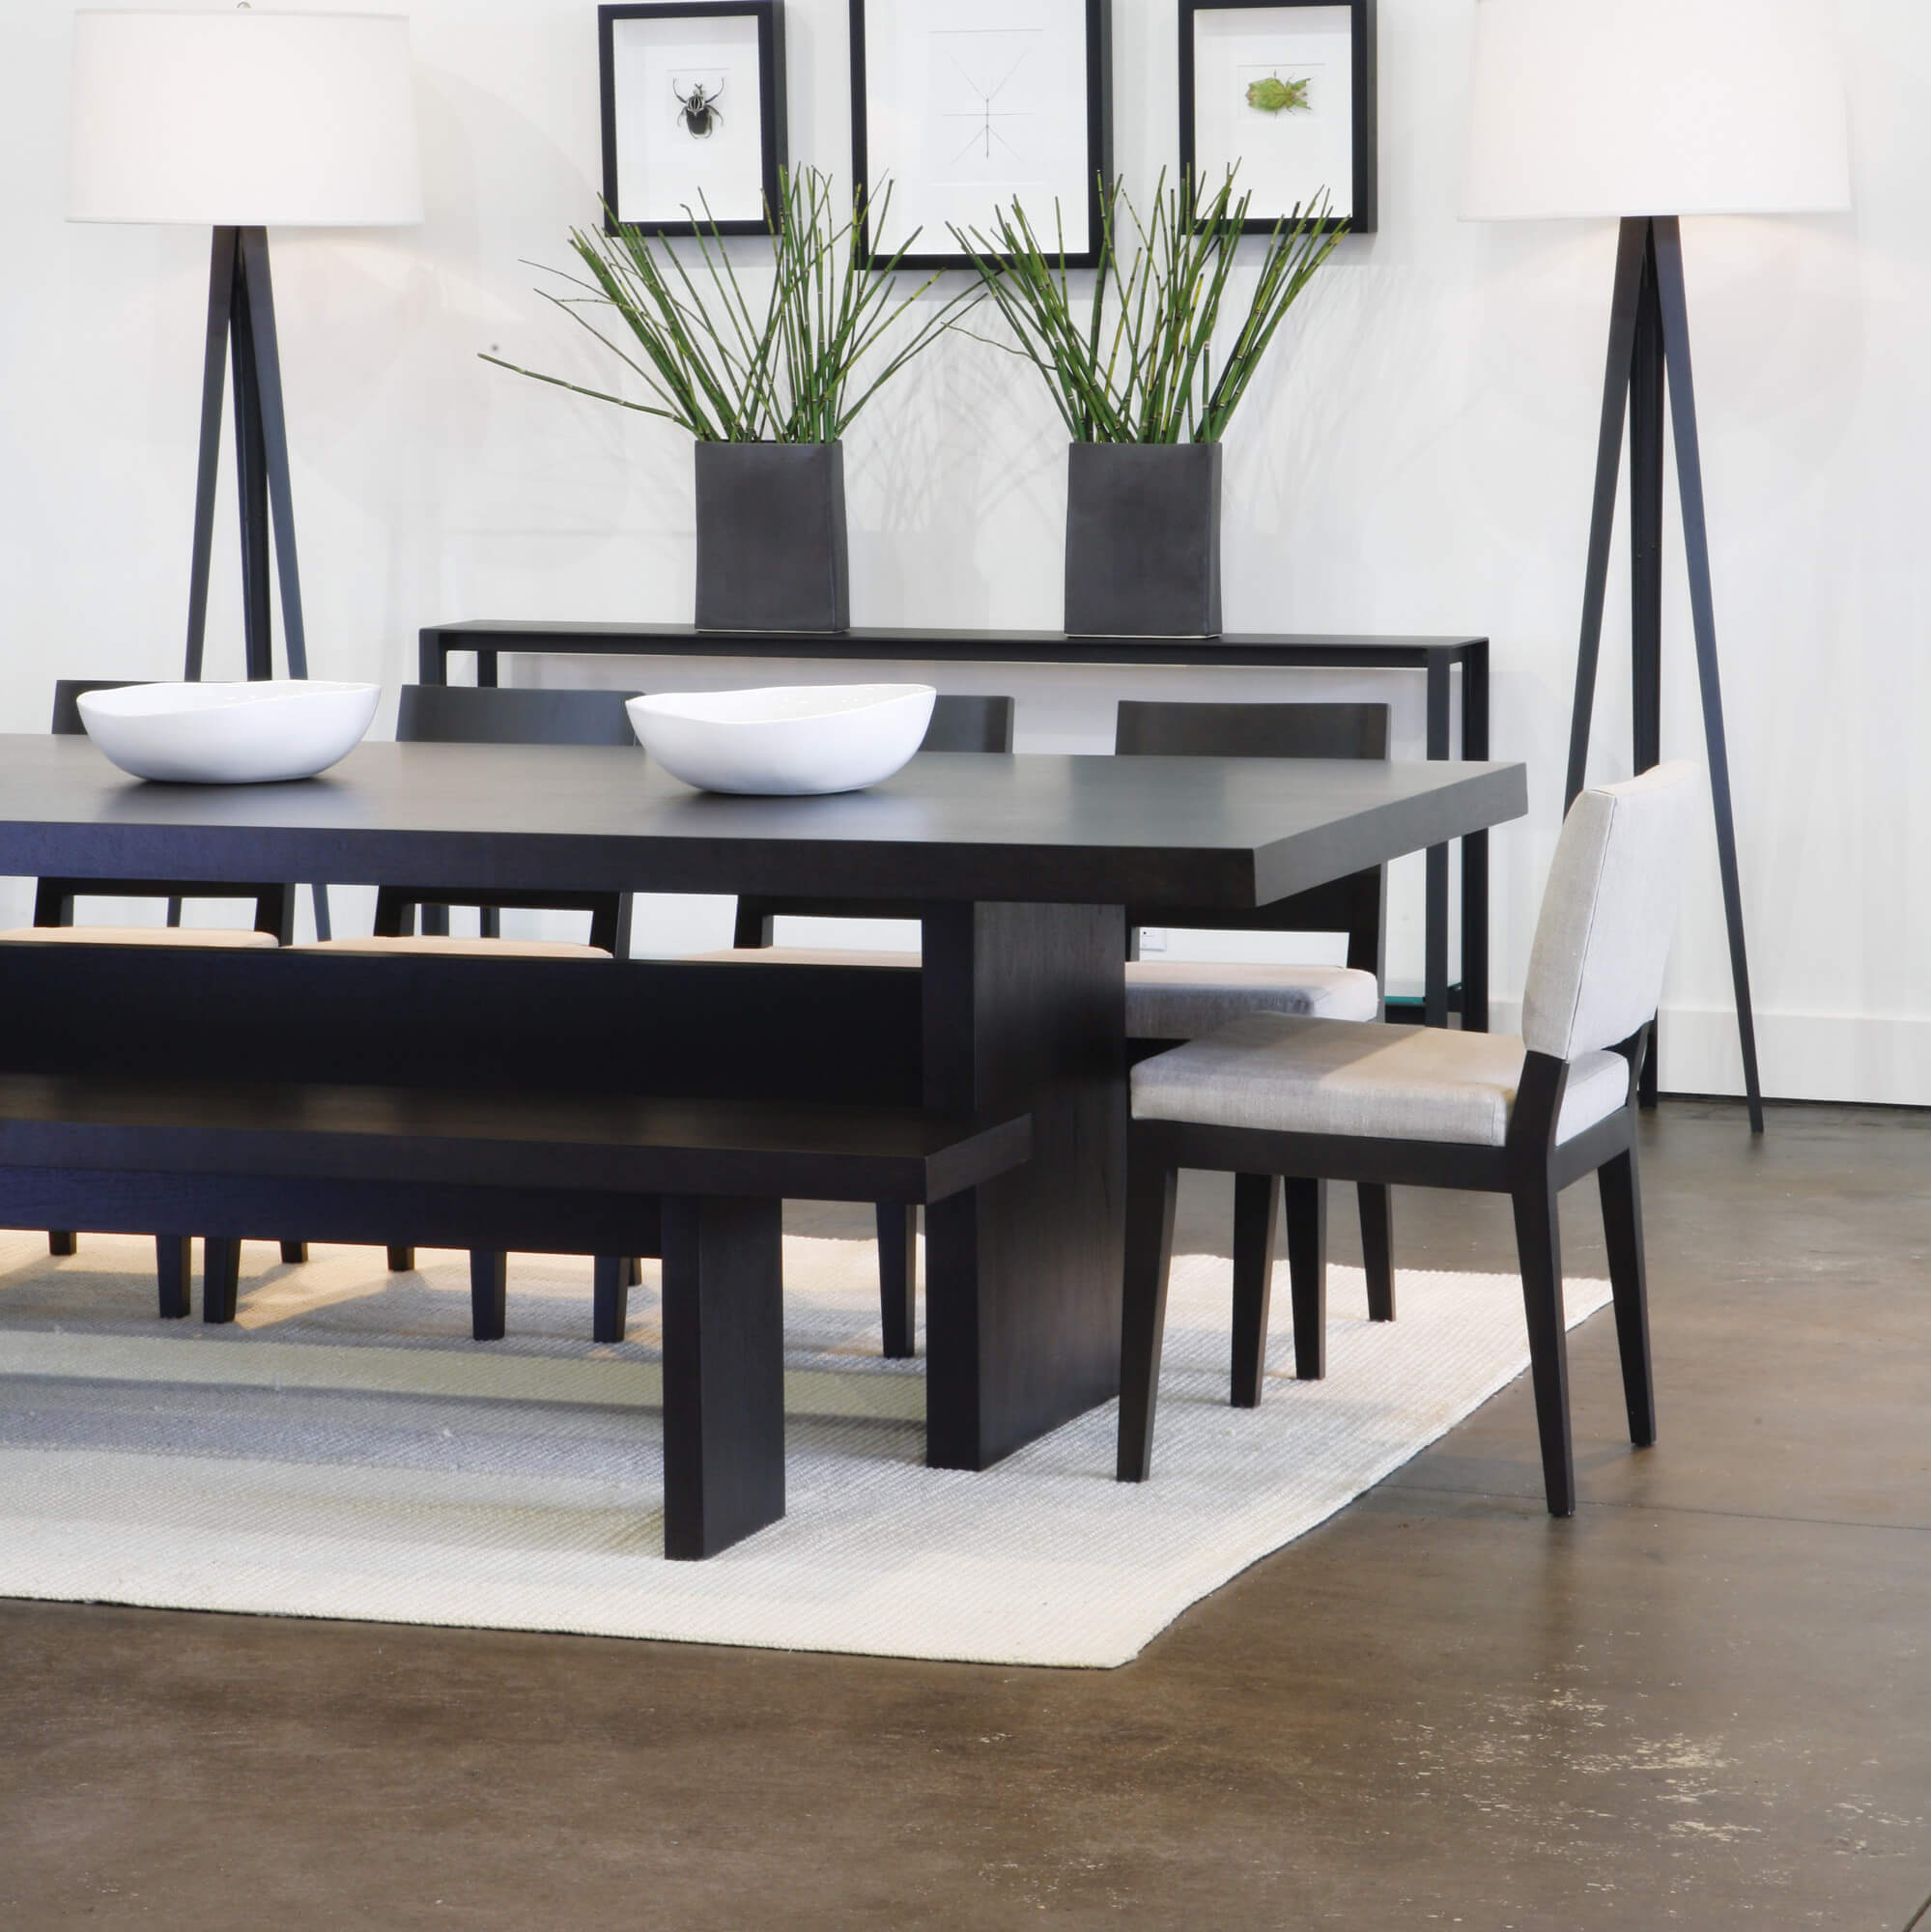 5 piece modern dining room set with bench this is a great dining room furniture - Designer Dining Room Sets